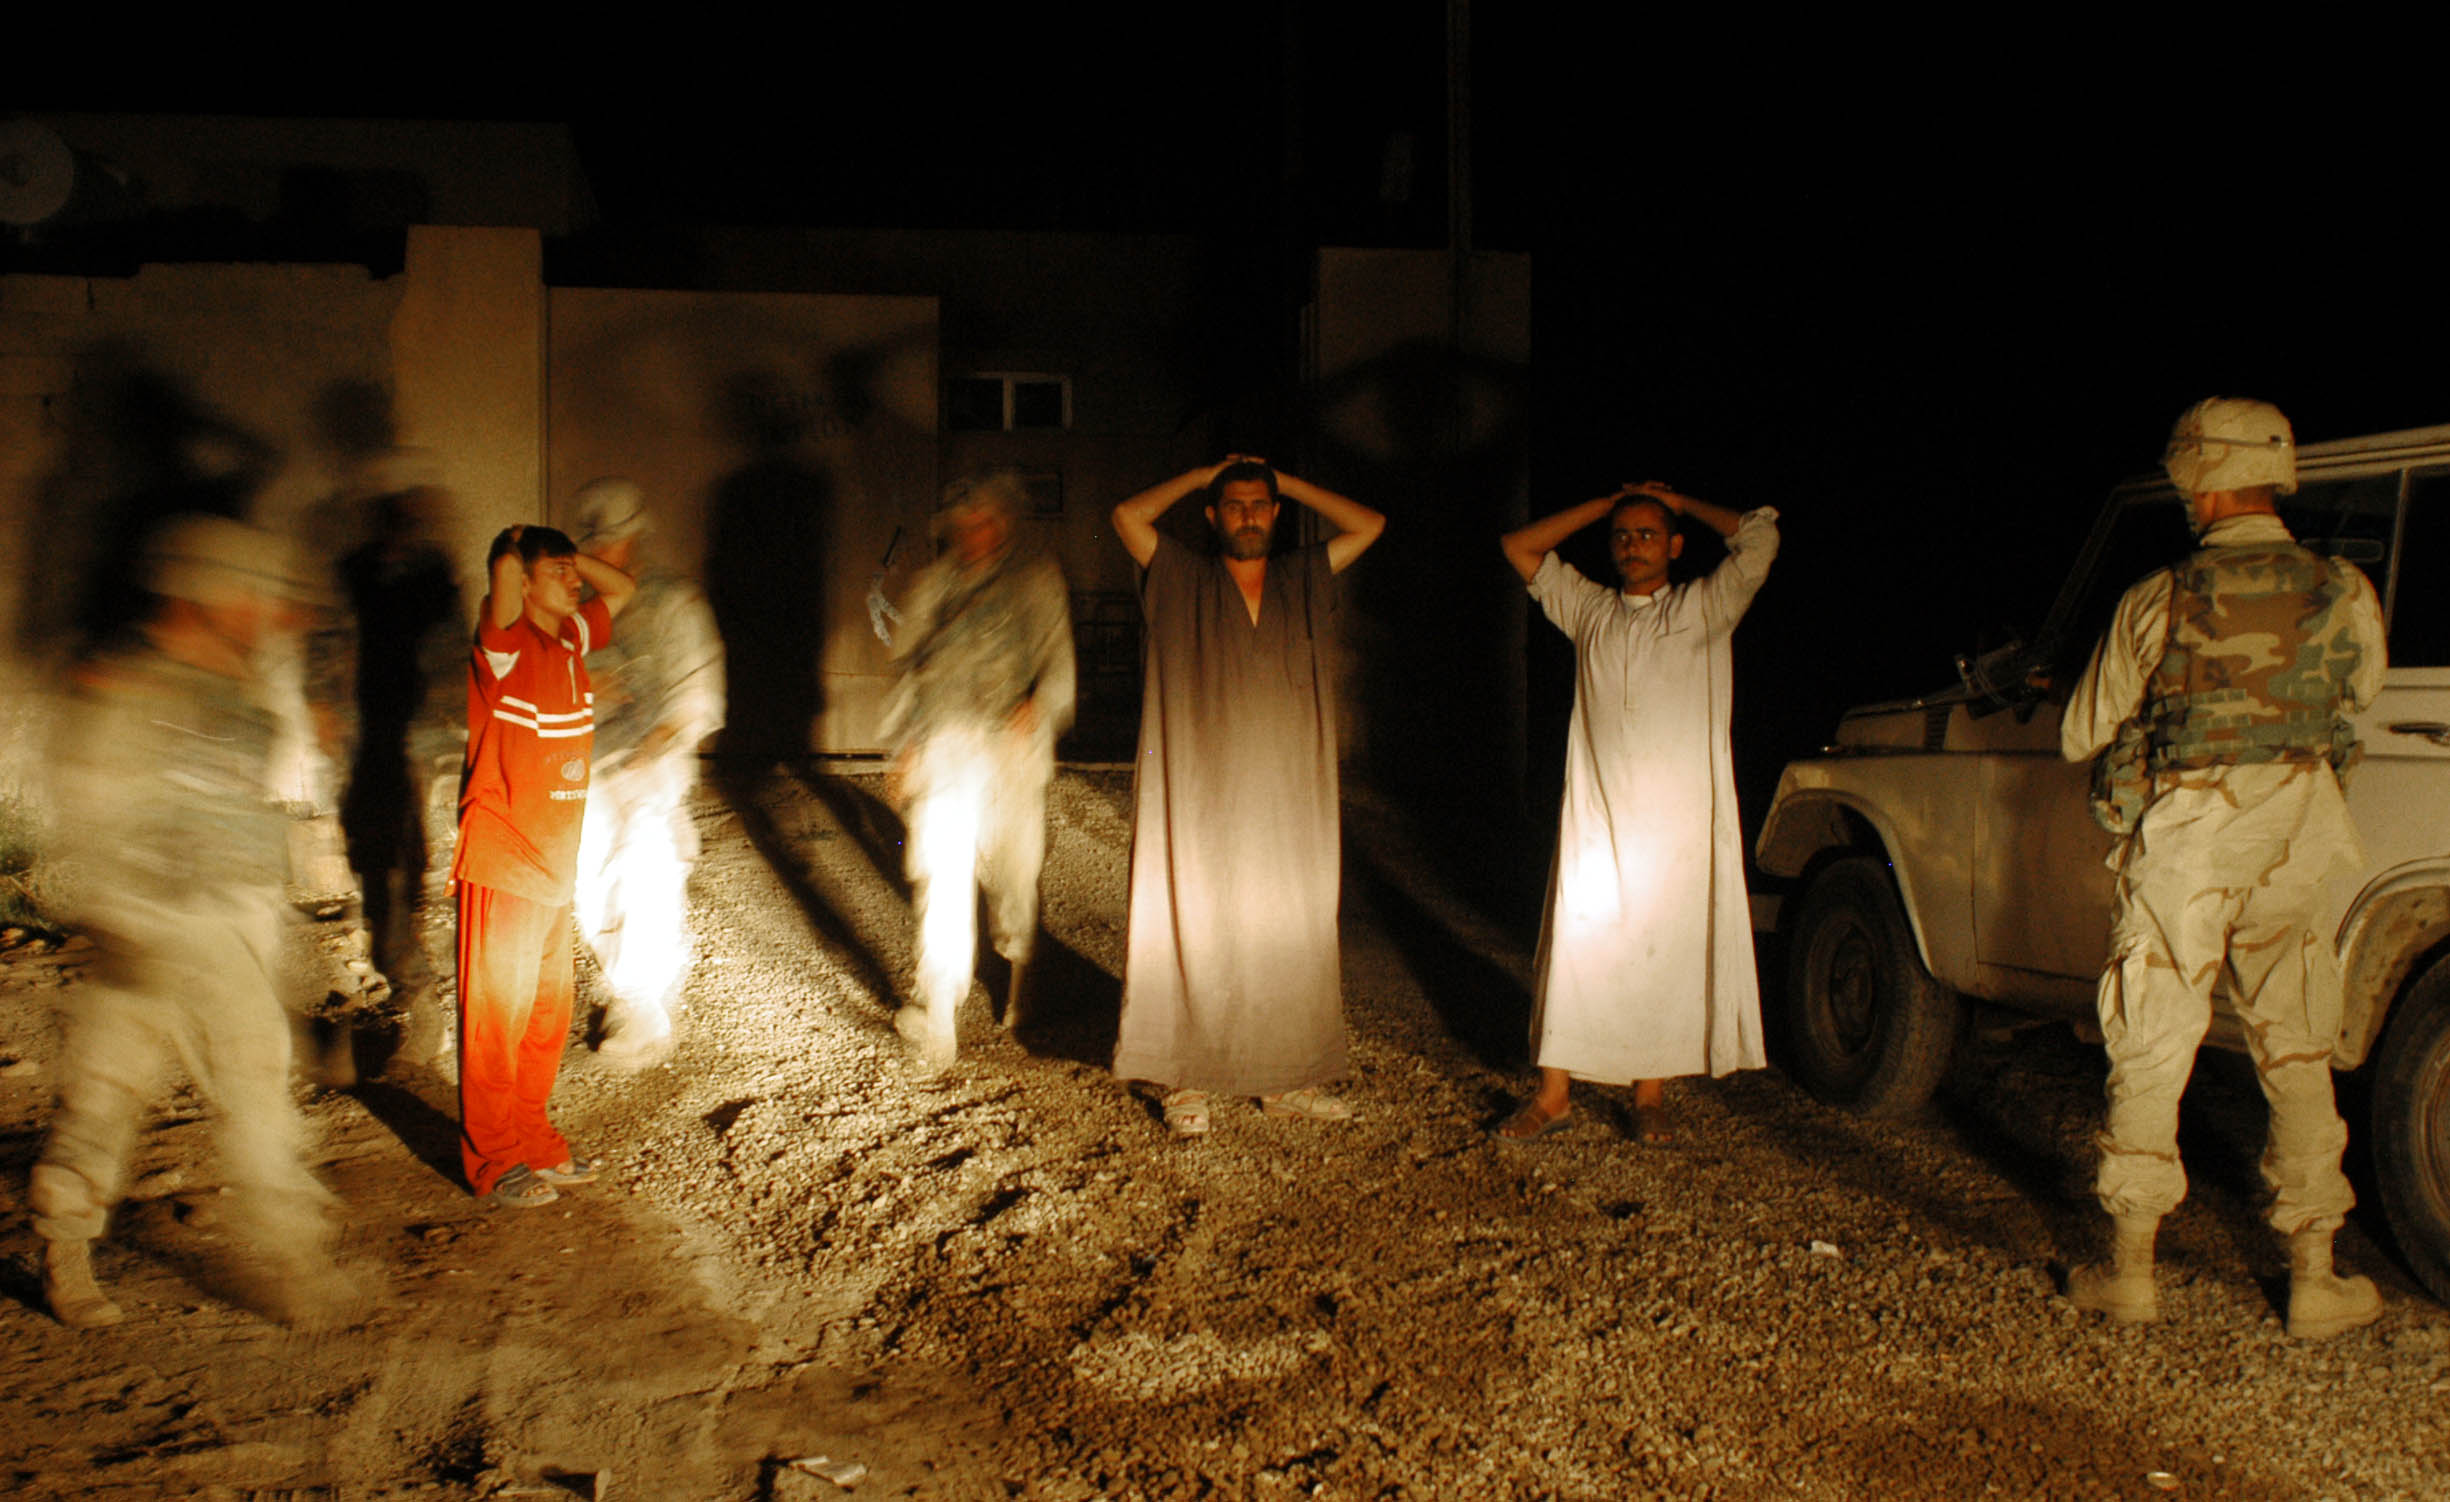 Soldiers with the 4th ID, 3rd Brigade, from the 1st Batallian-68th Armored Regiment momentarily detain and search Iraqi men during a night patrol north of Baghdad near the Balad Base in Iraq, June 27, 2003.  Minutes after this image was shot, an Iraqi civilian crossed over what was possibly a remote detonated explosive device set in the road intended for the US troops meters before the convoy of US vehicles, and severlely injured the man.   In recent weeks, United States troops have suffered hundreds of attacks by Iraqi throughout Iraq, and are stepping up offensive operations throughout the country in search of opponents to US occupation of Iraq.